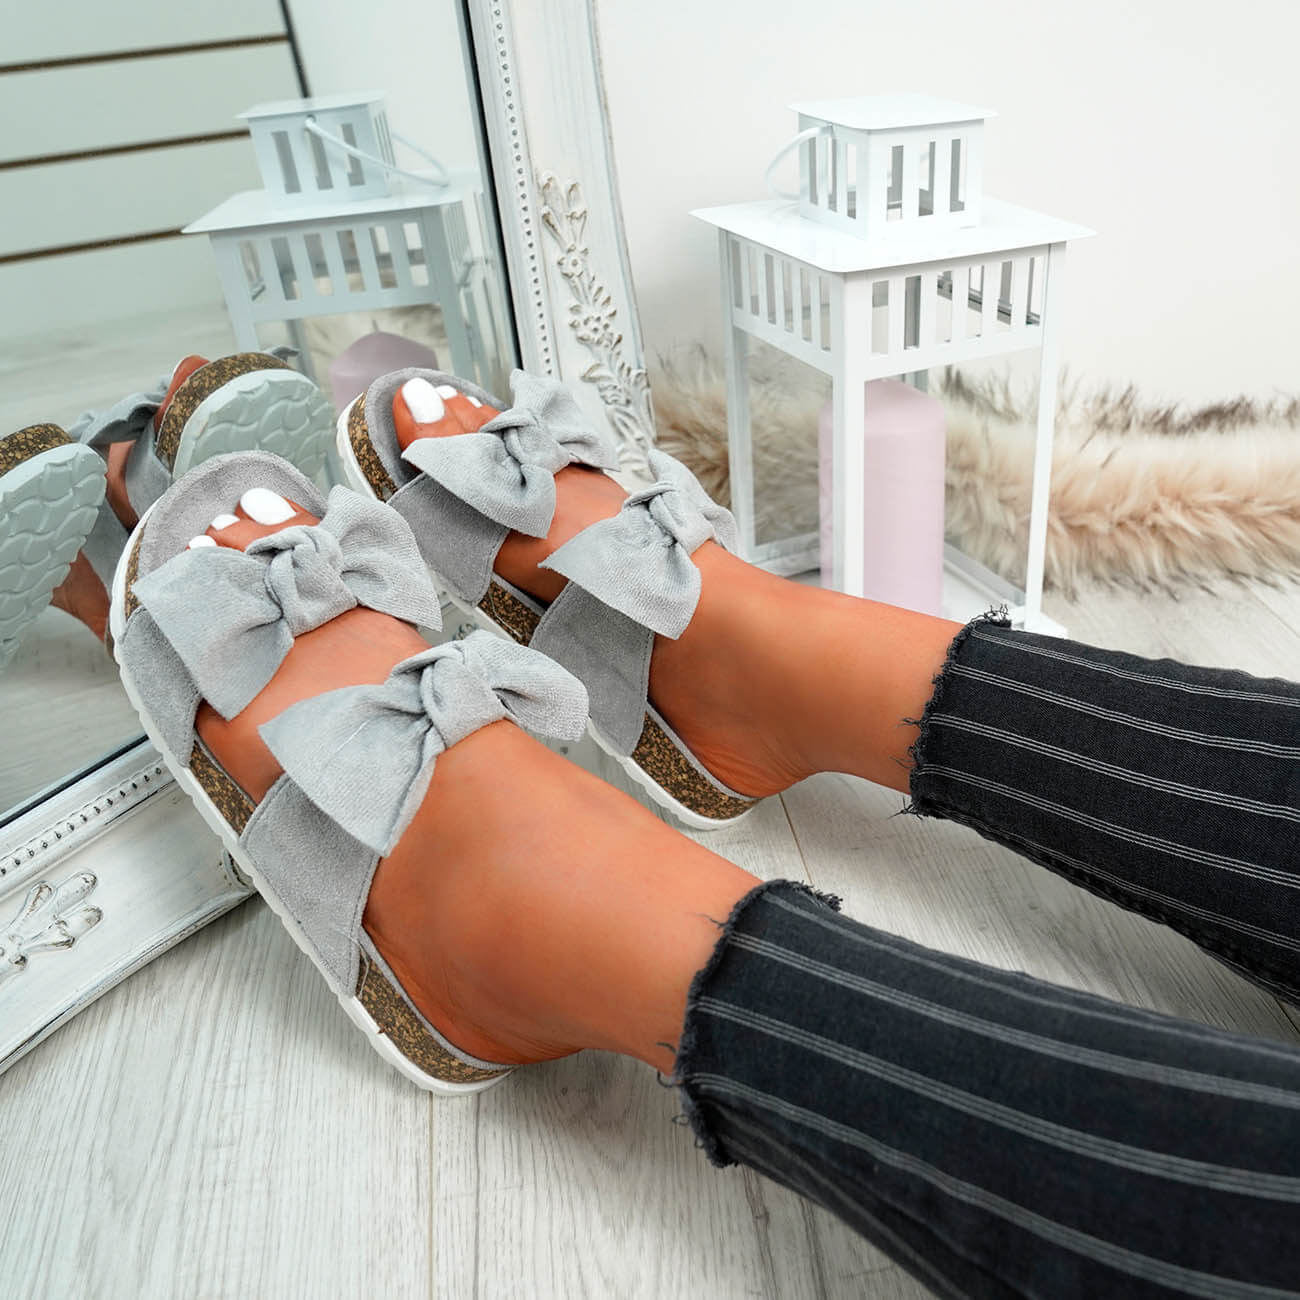 WOMENS-LADIES-PEEP-TOE-SLIP-ON-DOUBLE-BOW-FLAT-SANDALS-PARTY-CLUB-SUMMER-SHOES thumbnail 33